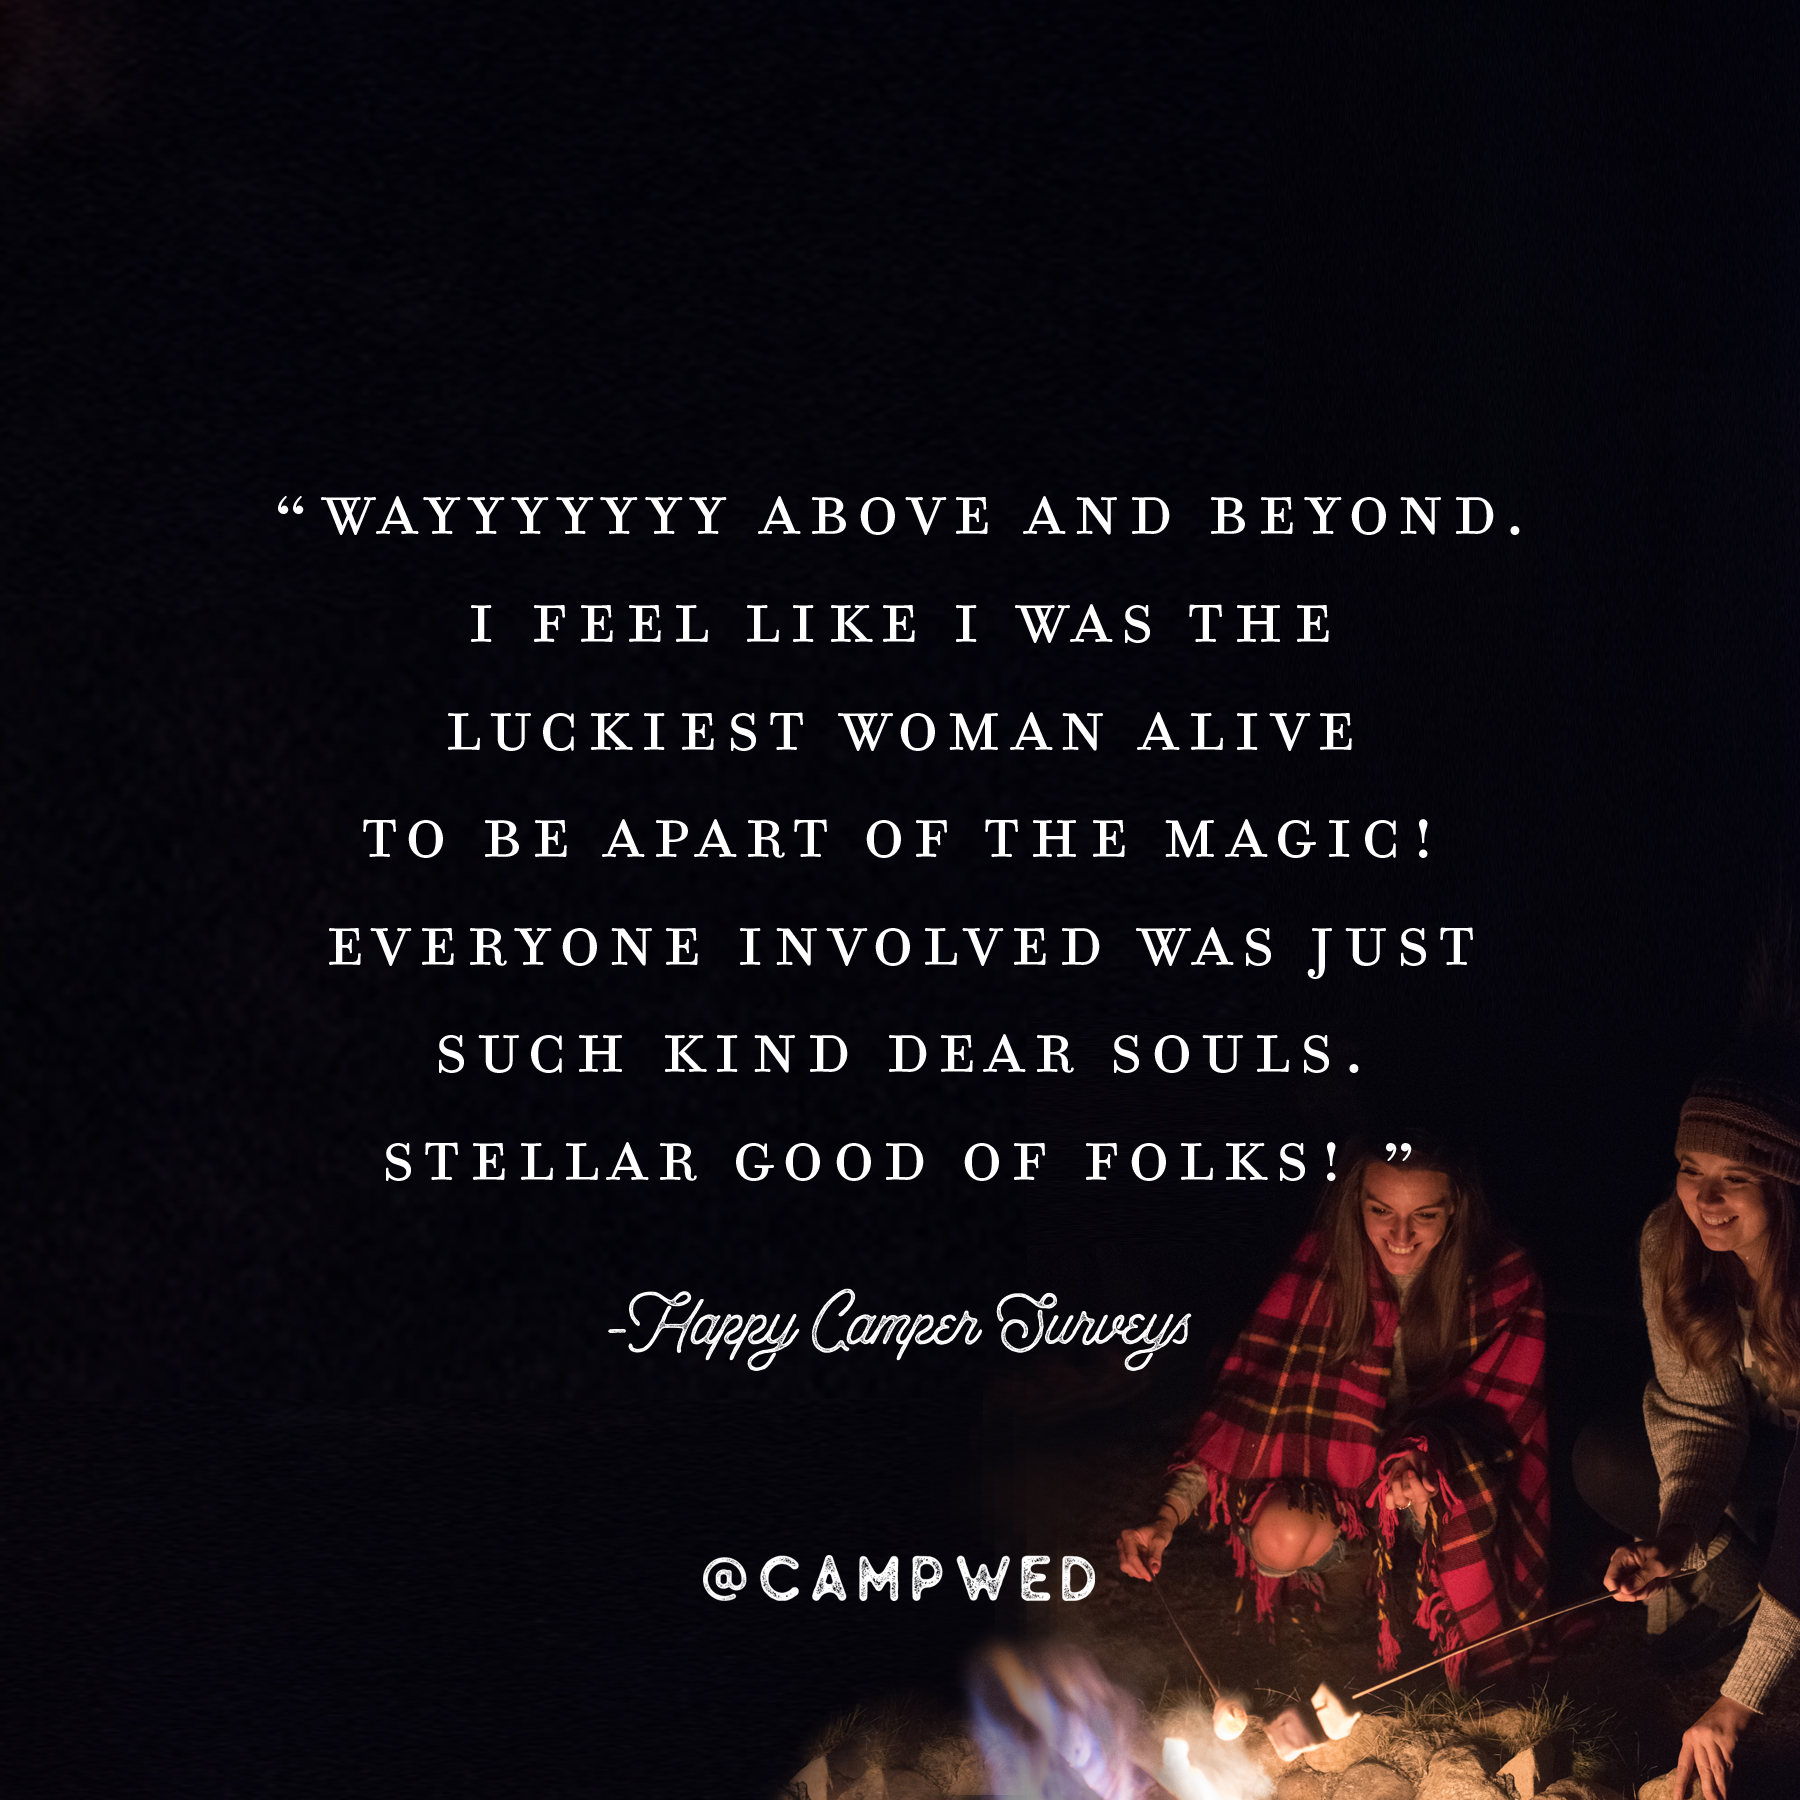 HAPPY CAMPER QUOTE 6.jpg